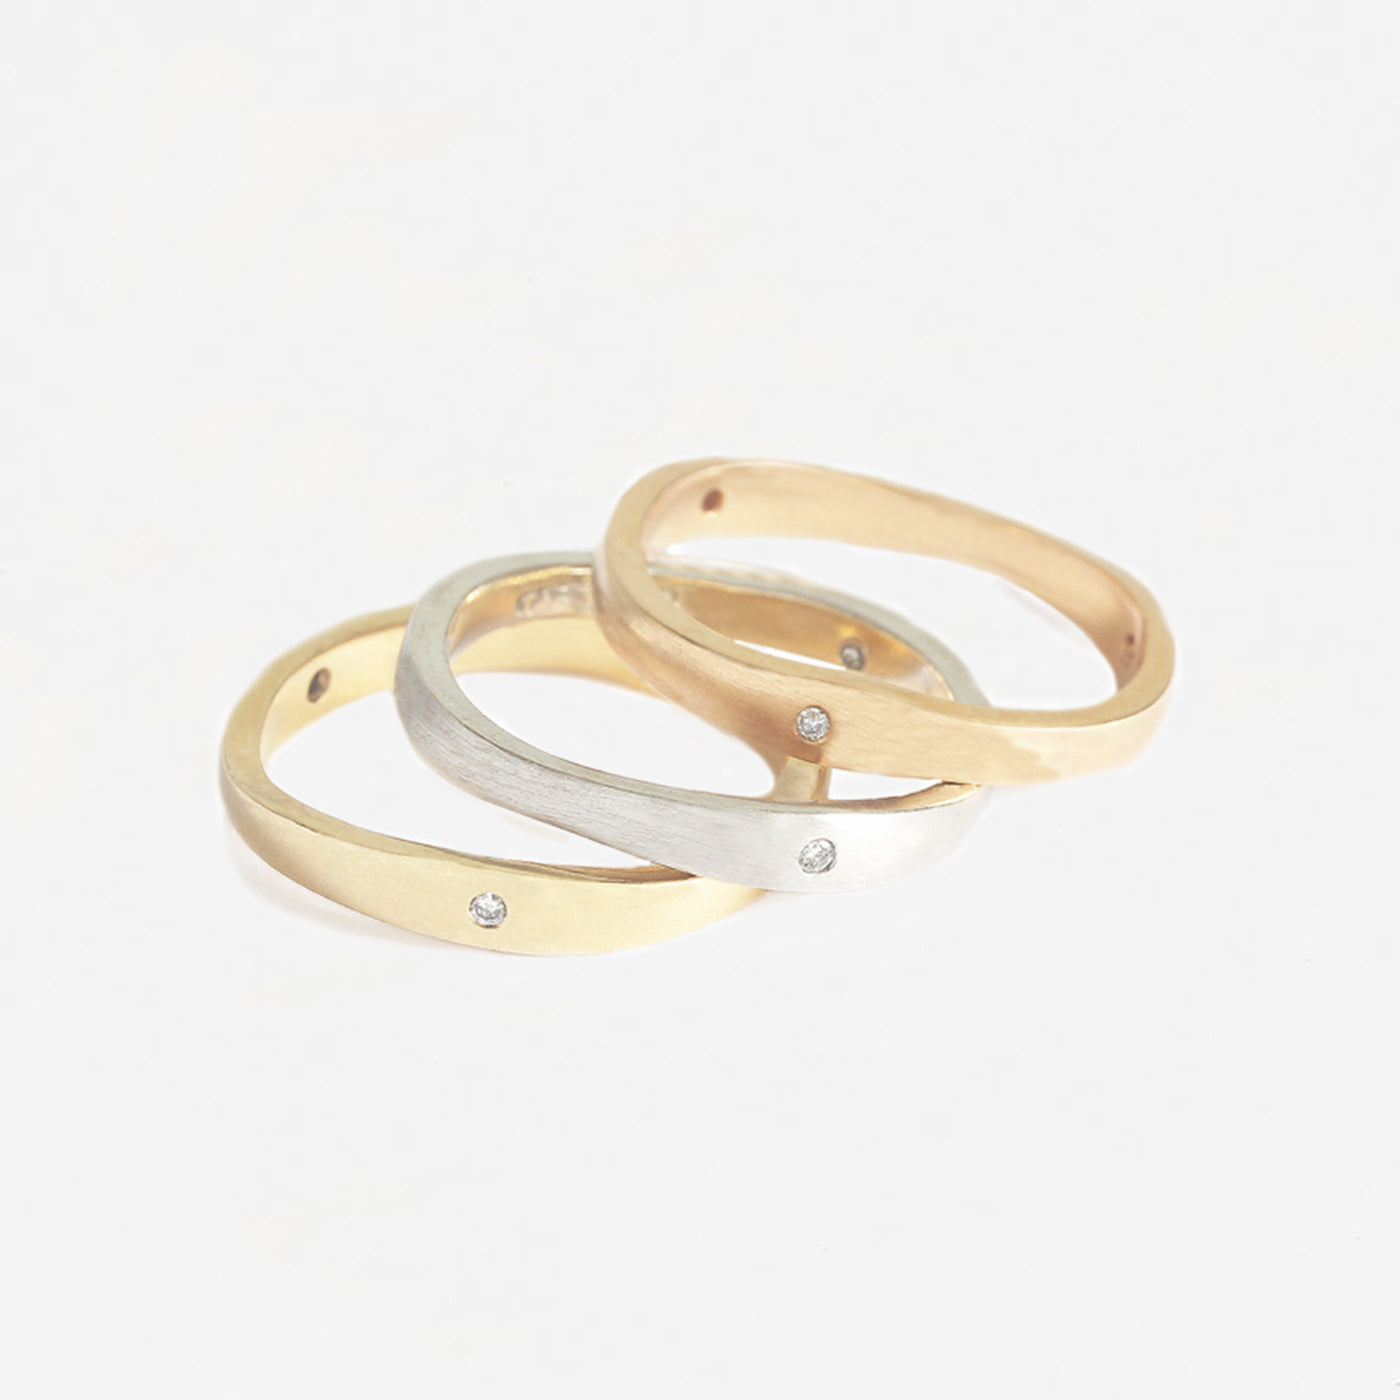 a beautiful set of 3 rings in rose yellow and white gold with a matte finish and diamonds